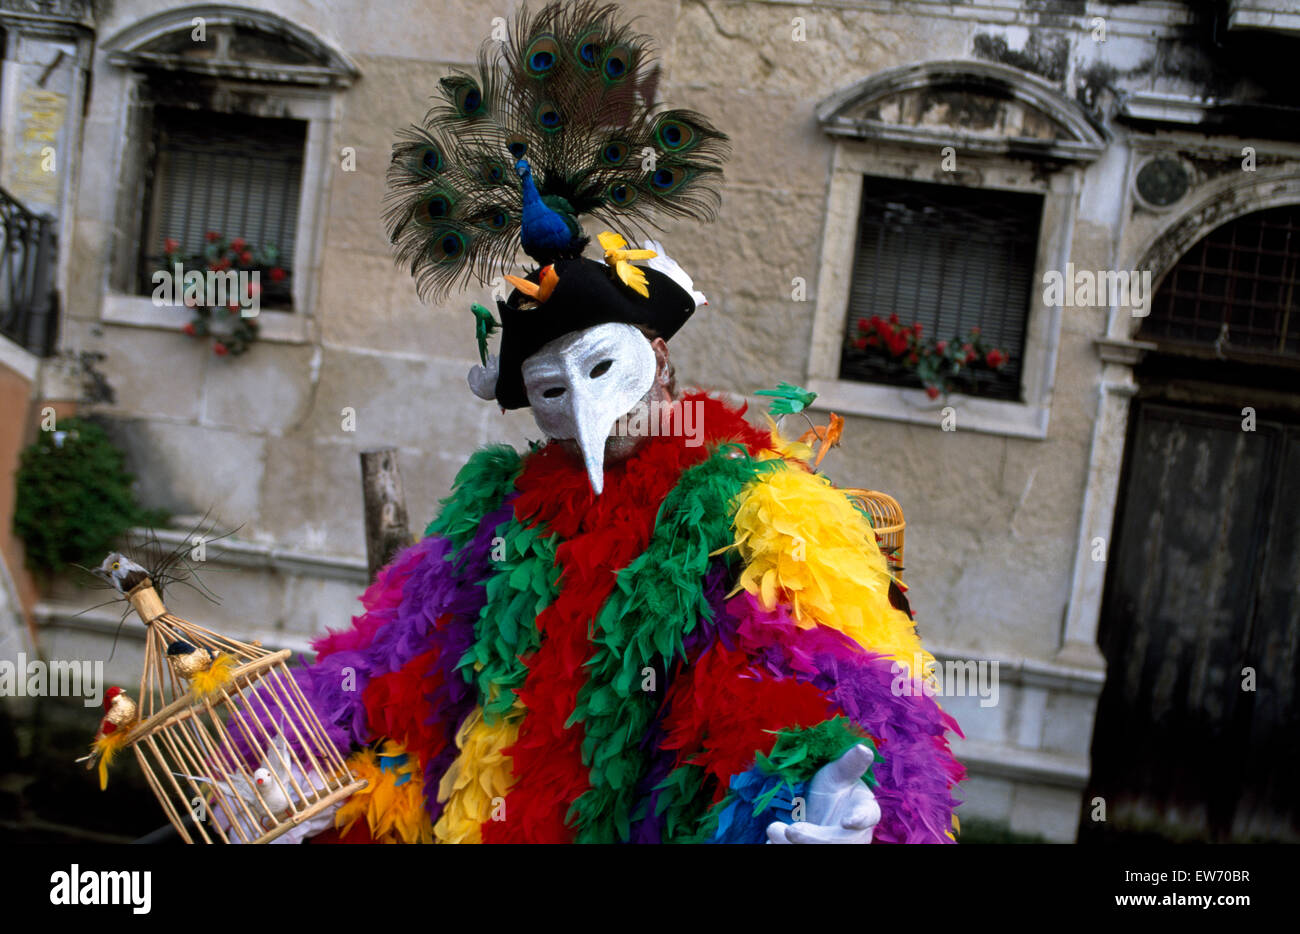 A Reveller wearing traditional mask and colorful robes at the Carnival in Venice         FOR EDITORIAL USE ONLY - Stock Image